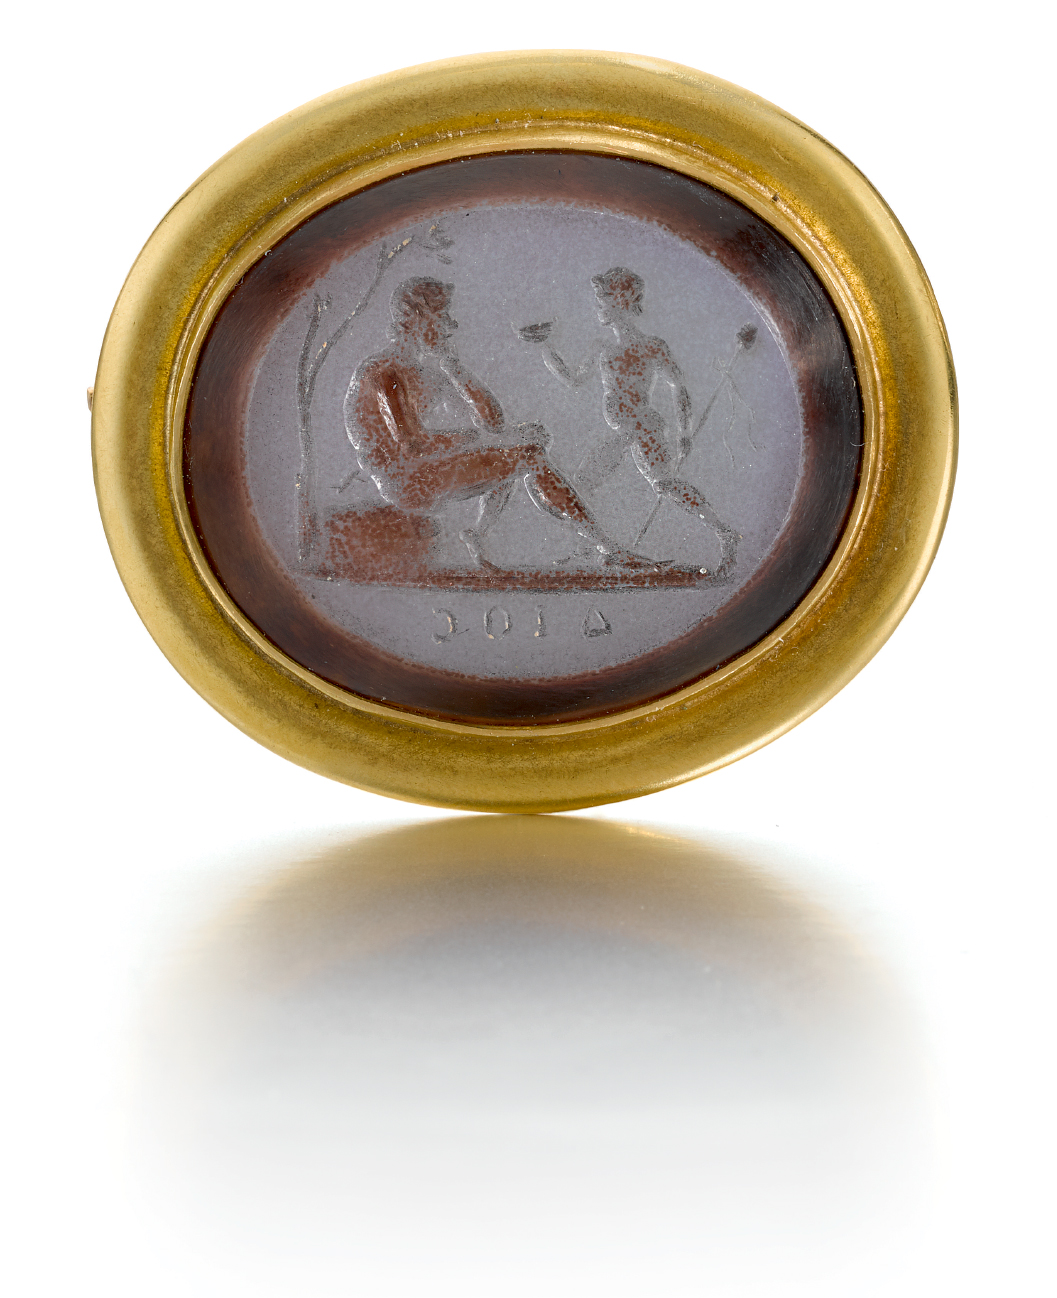 ITALIAN, LATE 18TH CENTURY | INTAGLIO WITH A YOUTH AND A SATYR